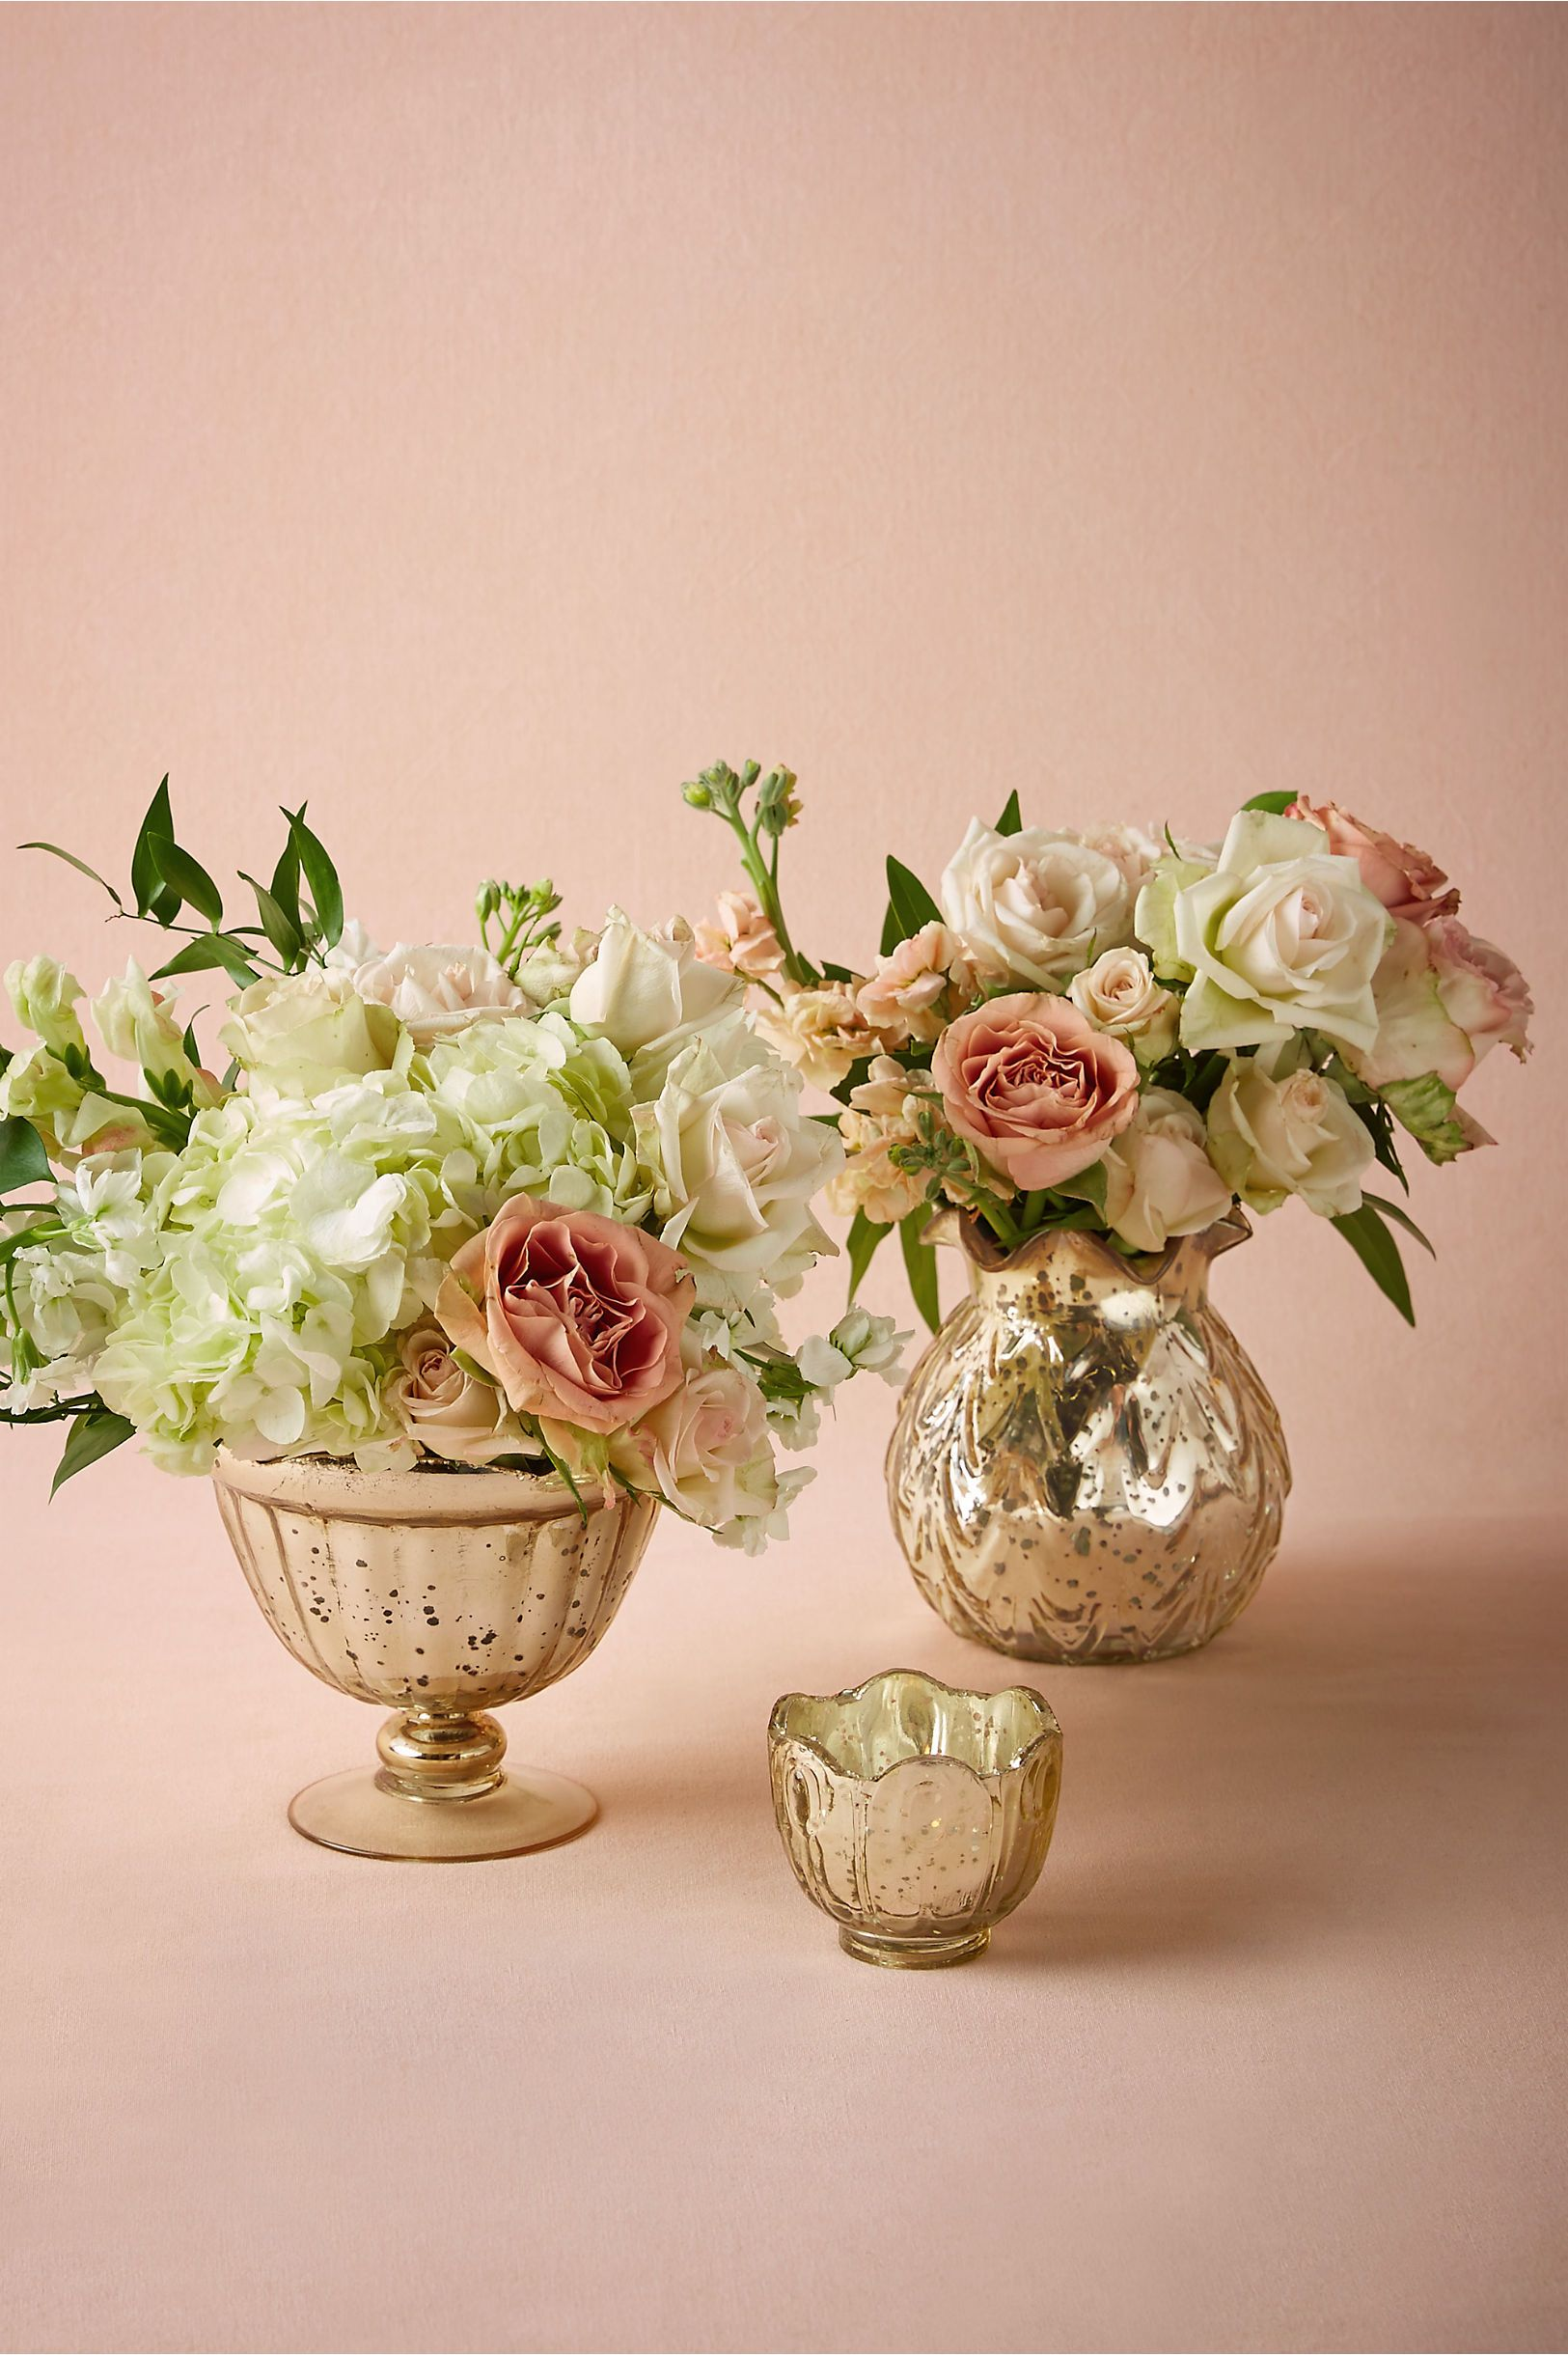 Gilt Mercury Glass Vessel in Décor Centerpieces at BHLDN